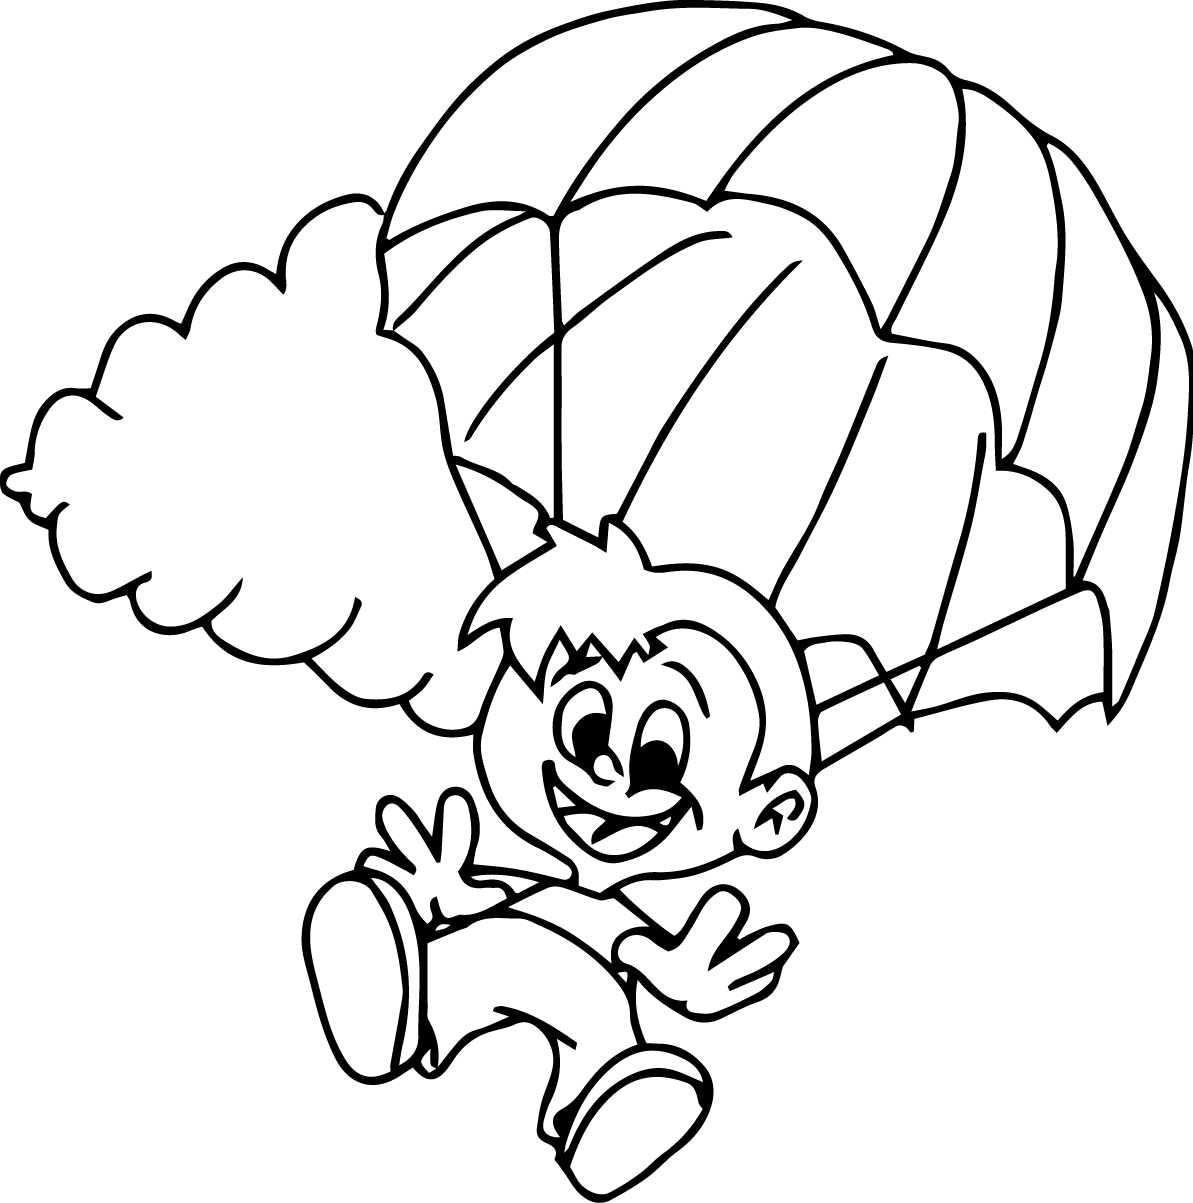 How To Make A Parachute With A Sheet